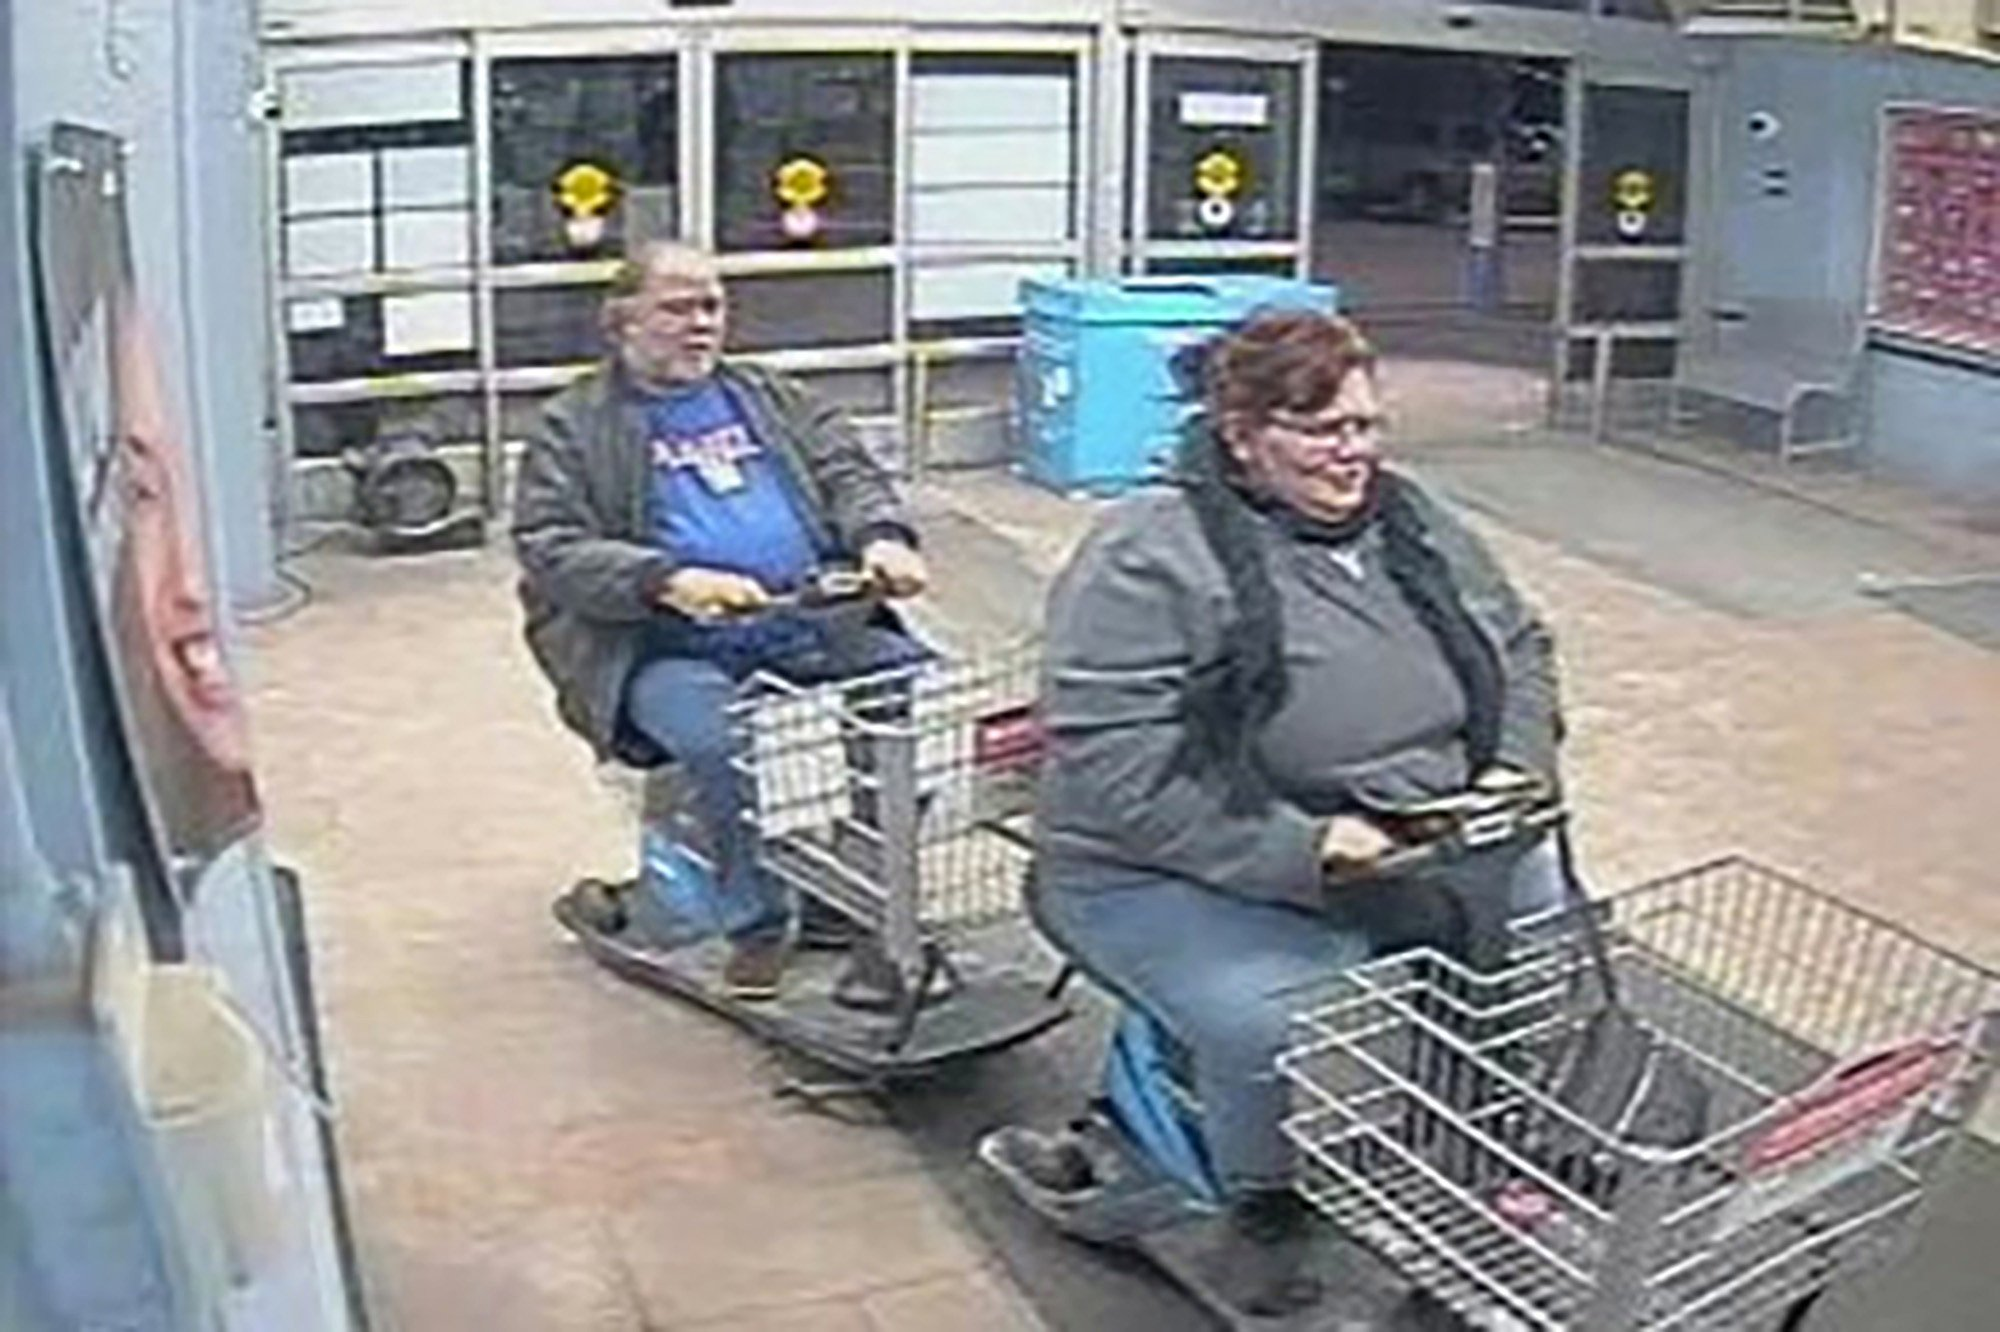 Electric scooter bandits turn themselves in for Walmart theft